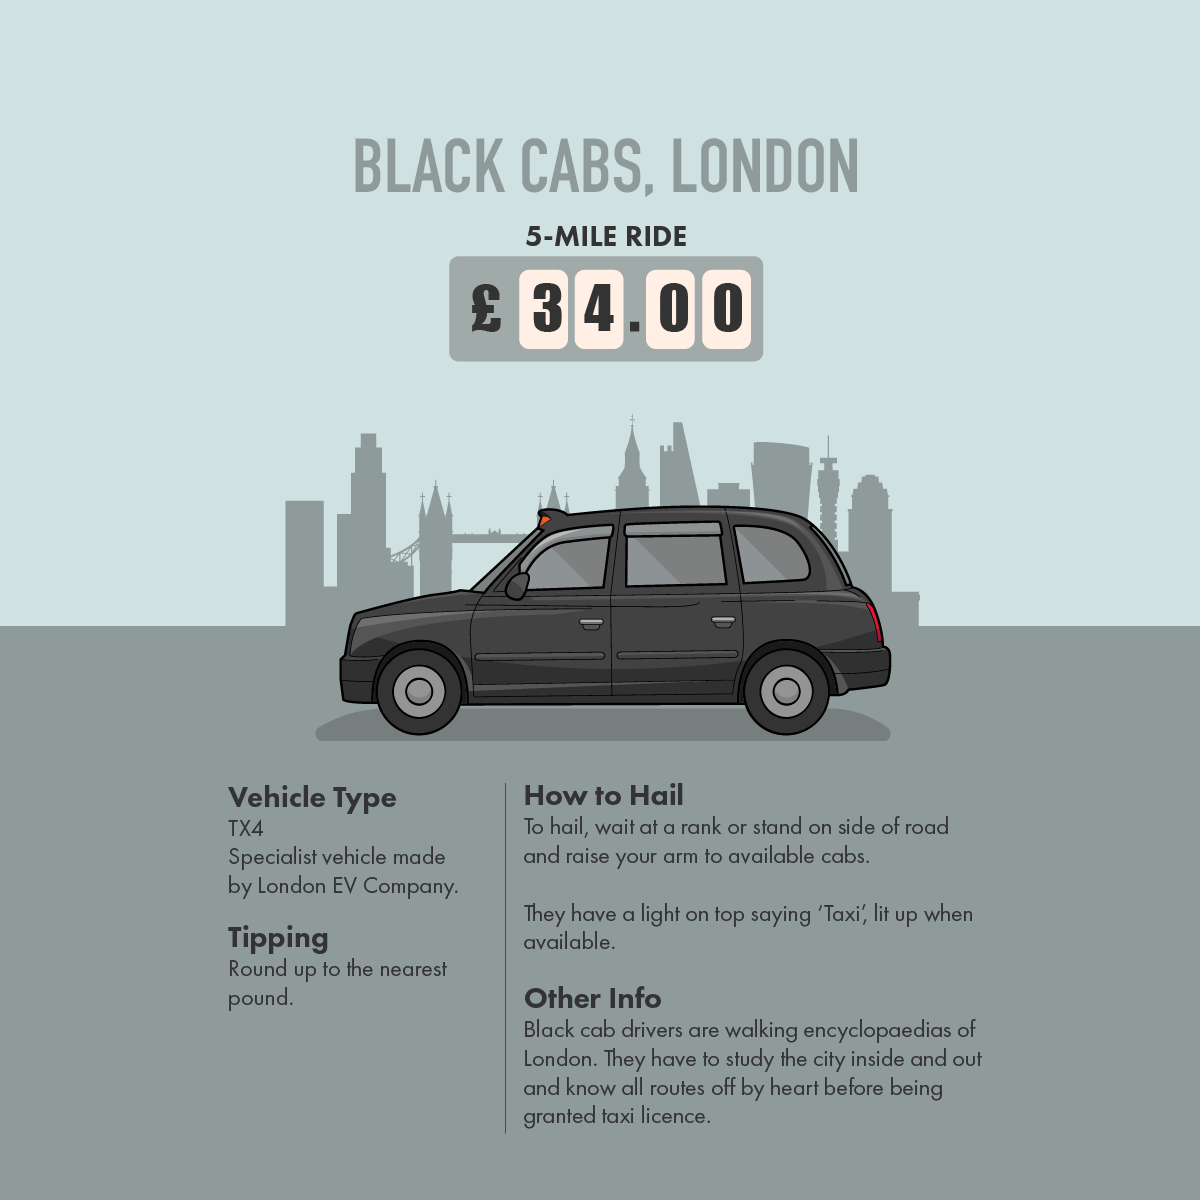 dc17e3821d The black cabs of London